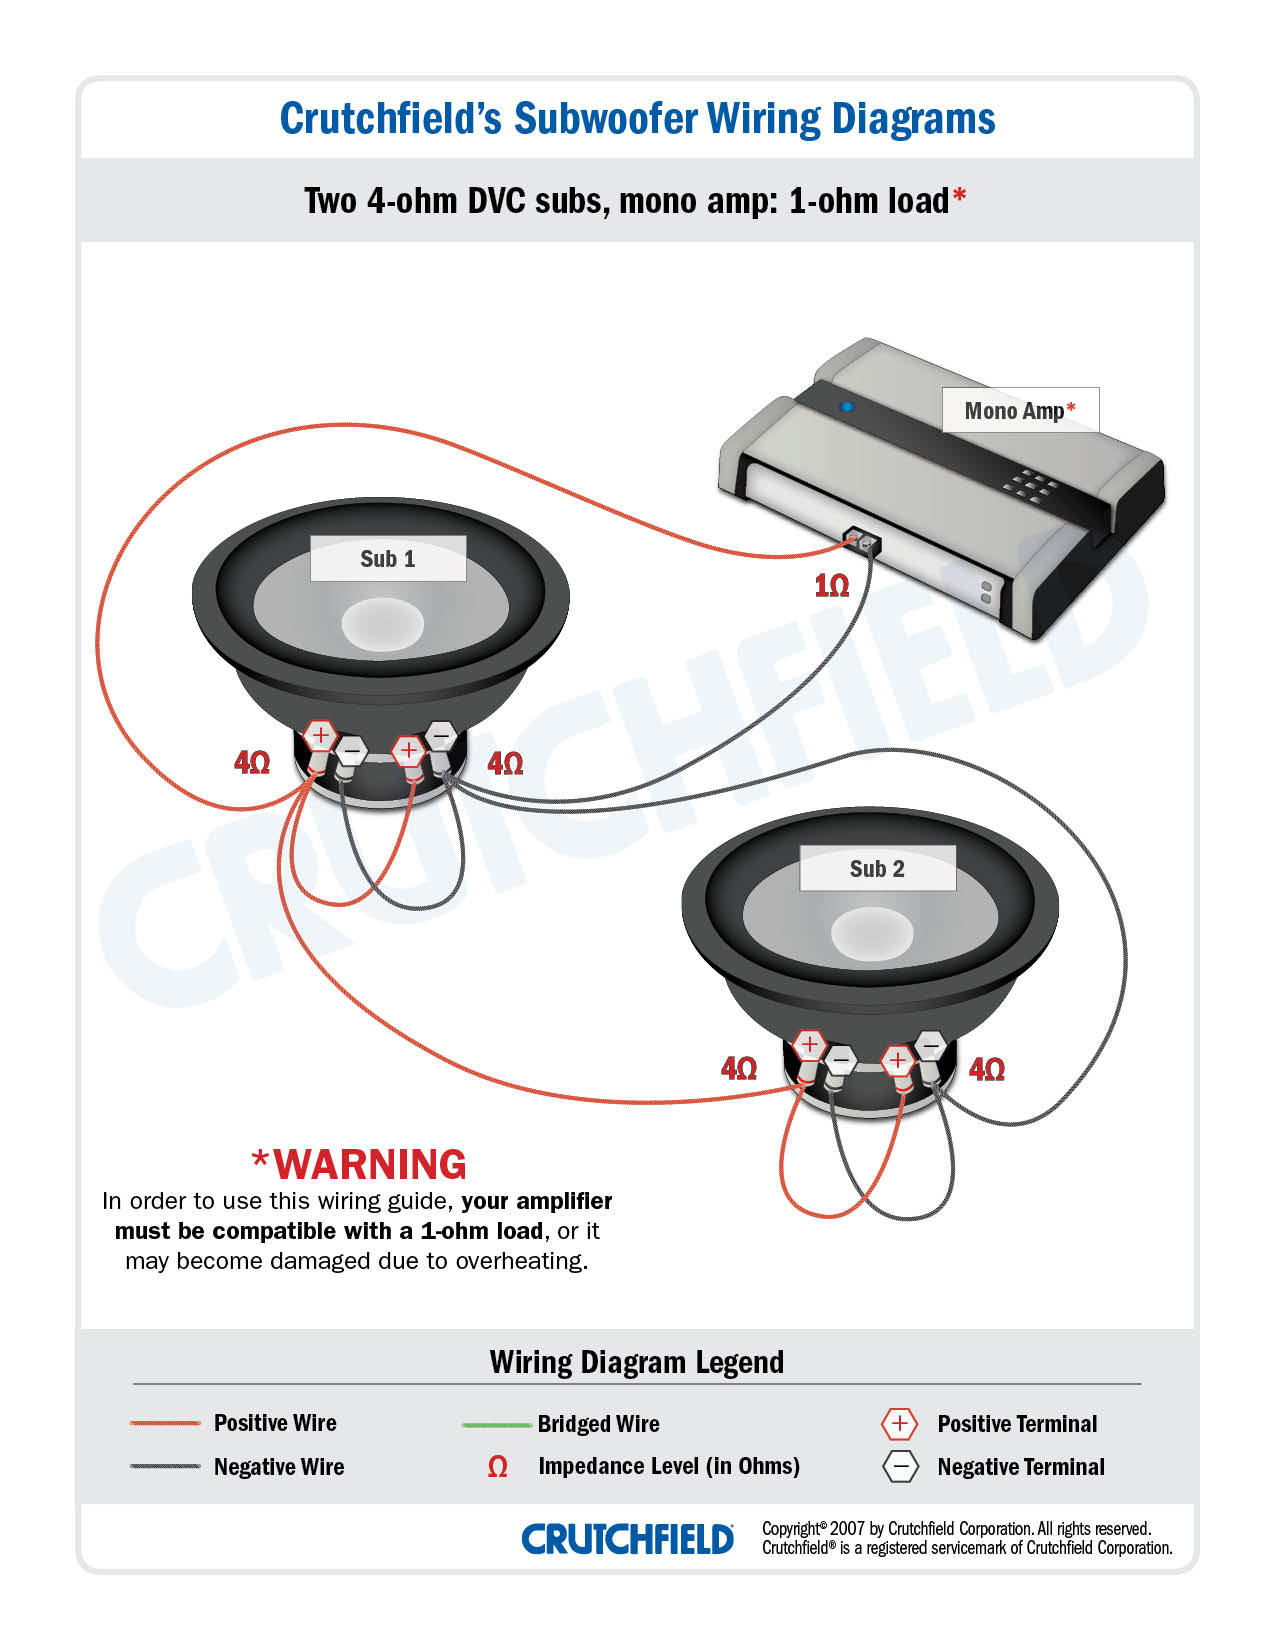 Subwoofer Wiring Diagrams — How To Wire Your Subs - Crutchfield Wiring Diagram